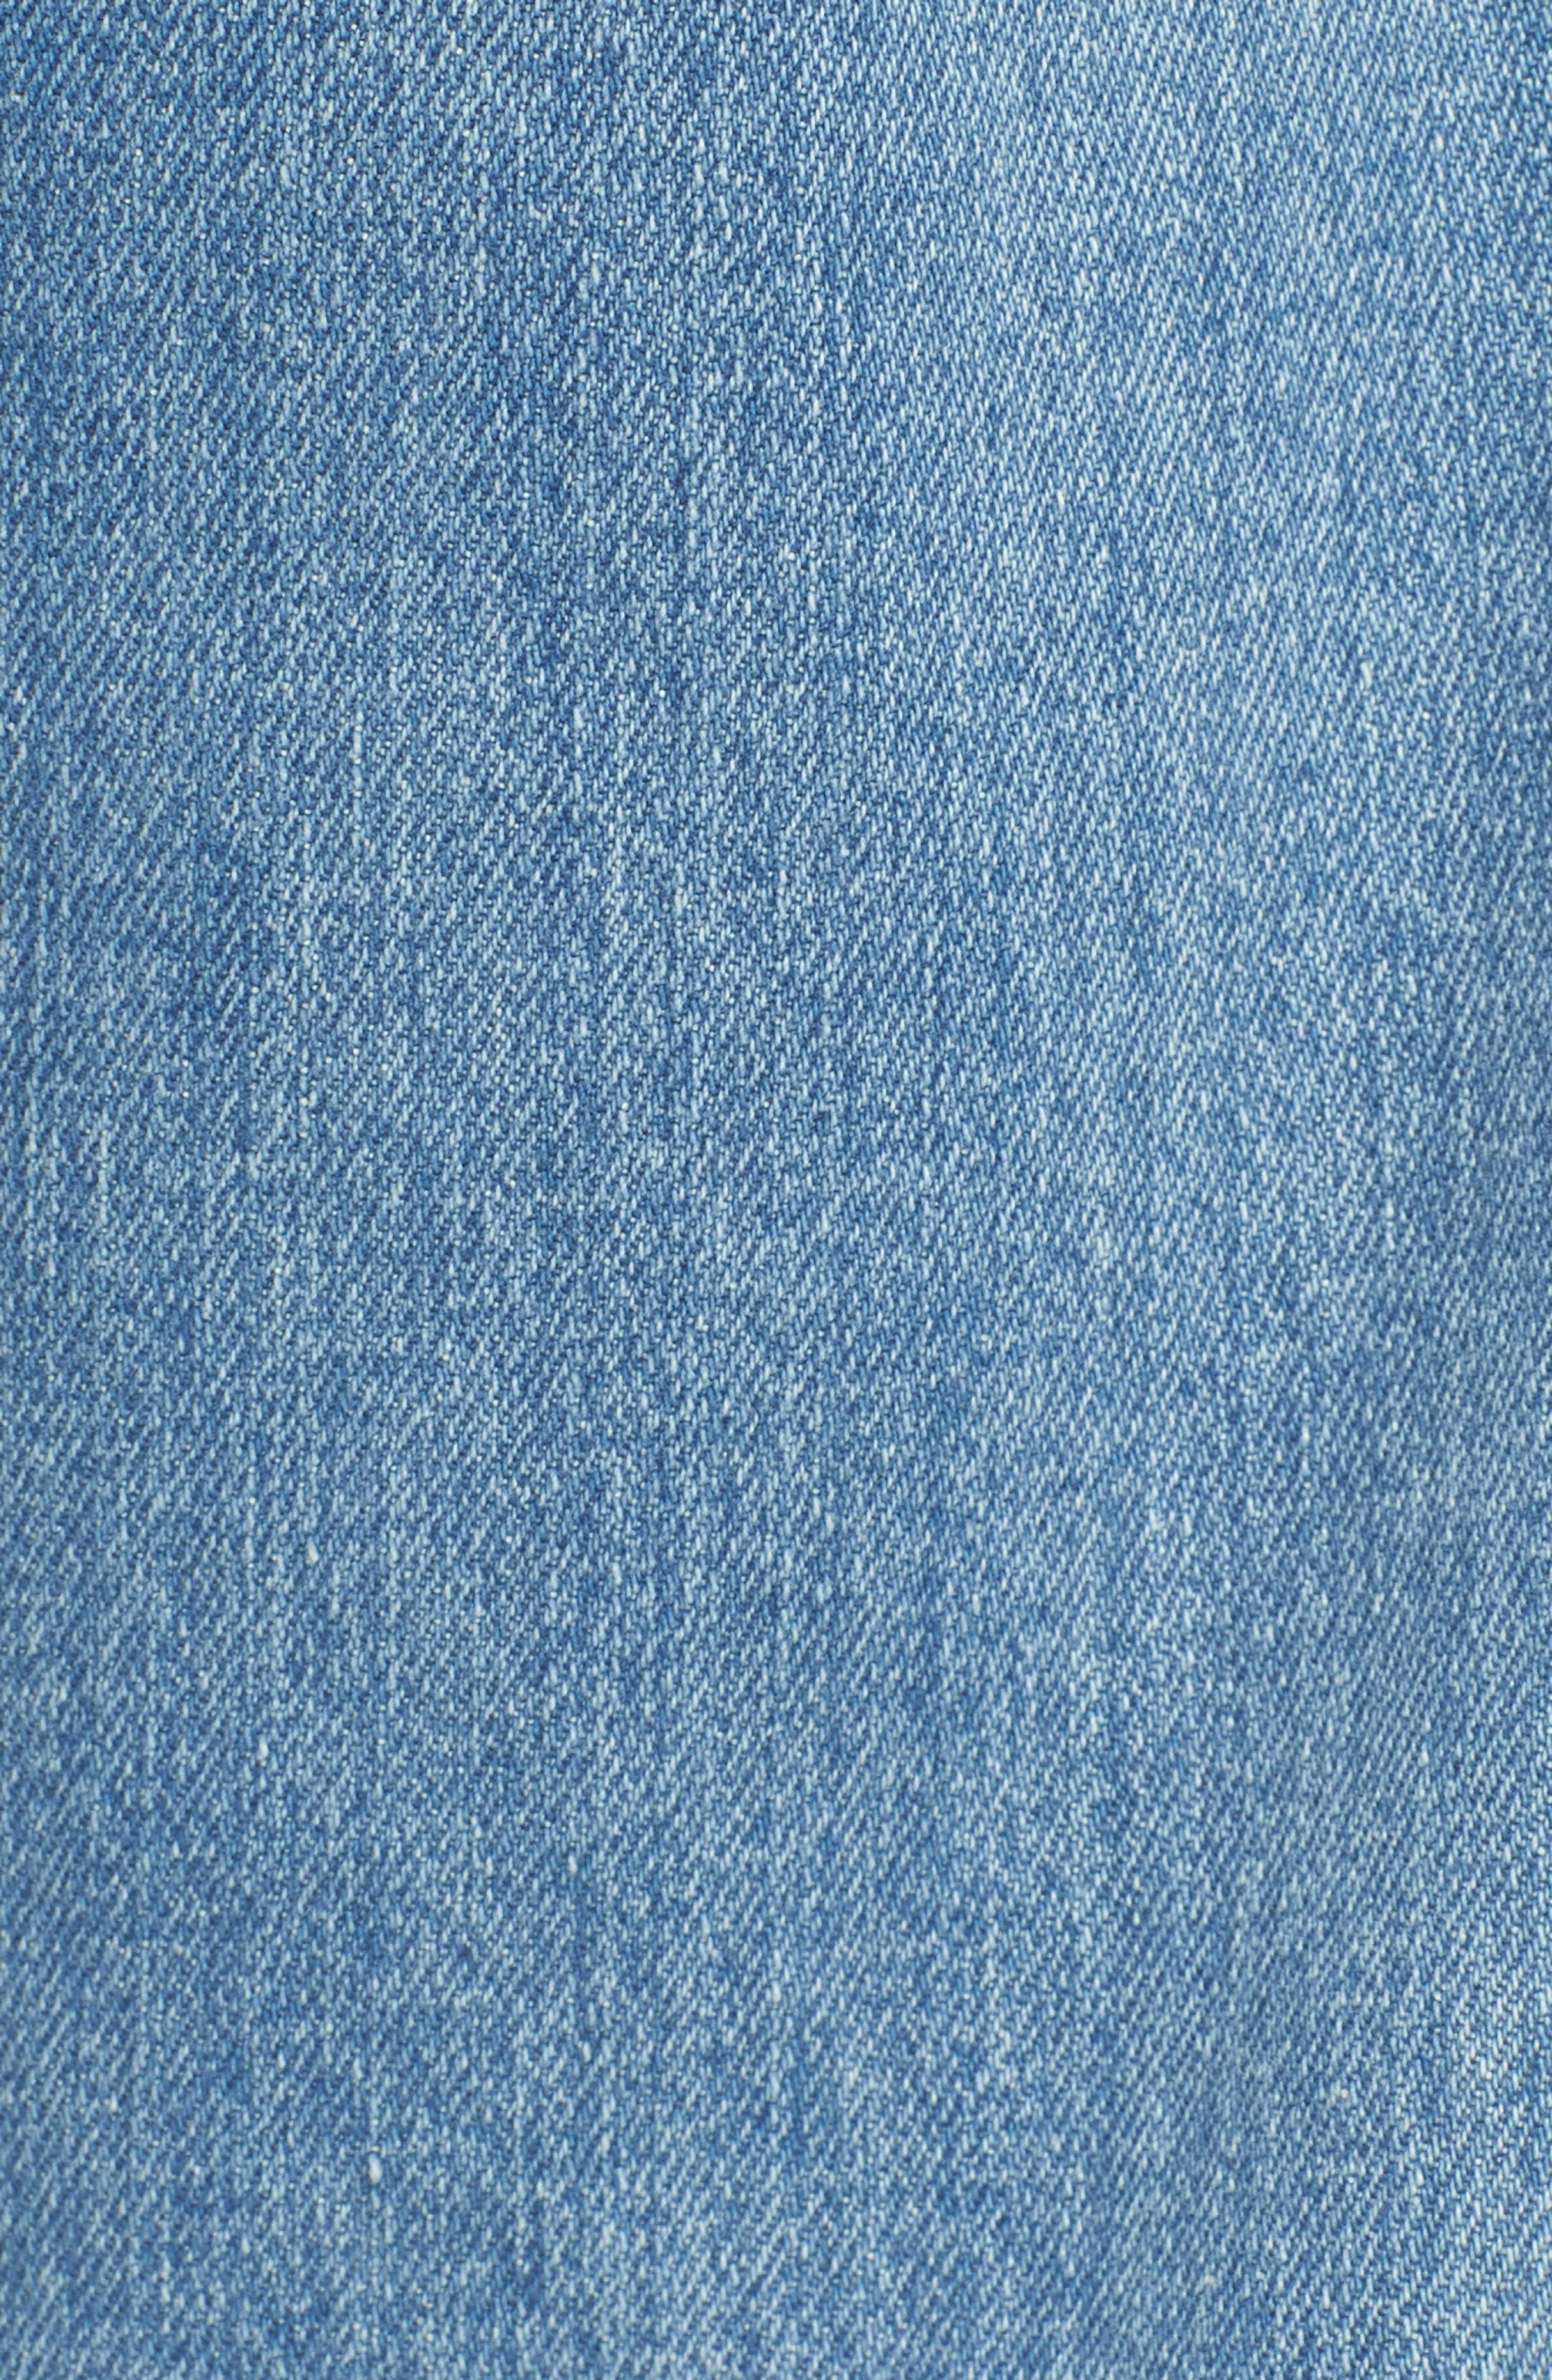 Austyn Relaxed Fit Jeans,                             Alternate thumbnail 5, color,                             401